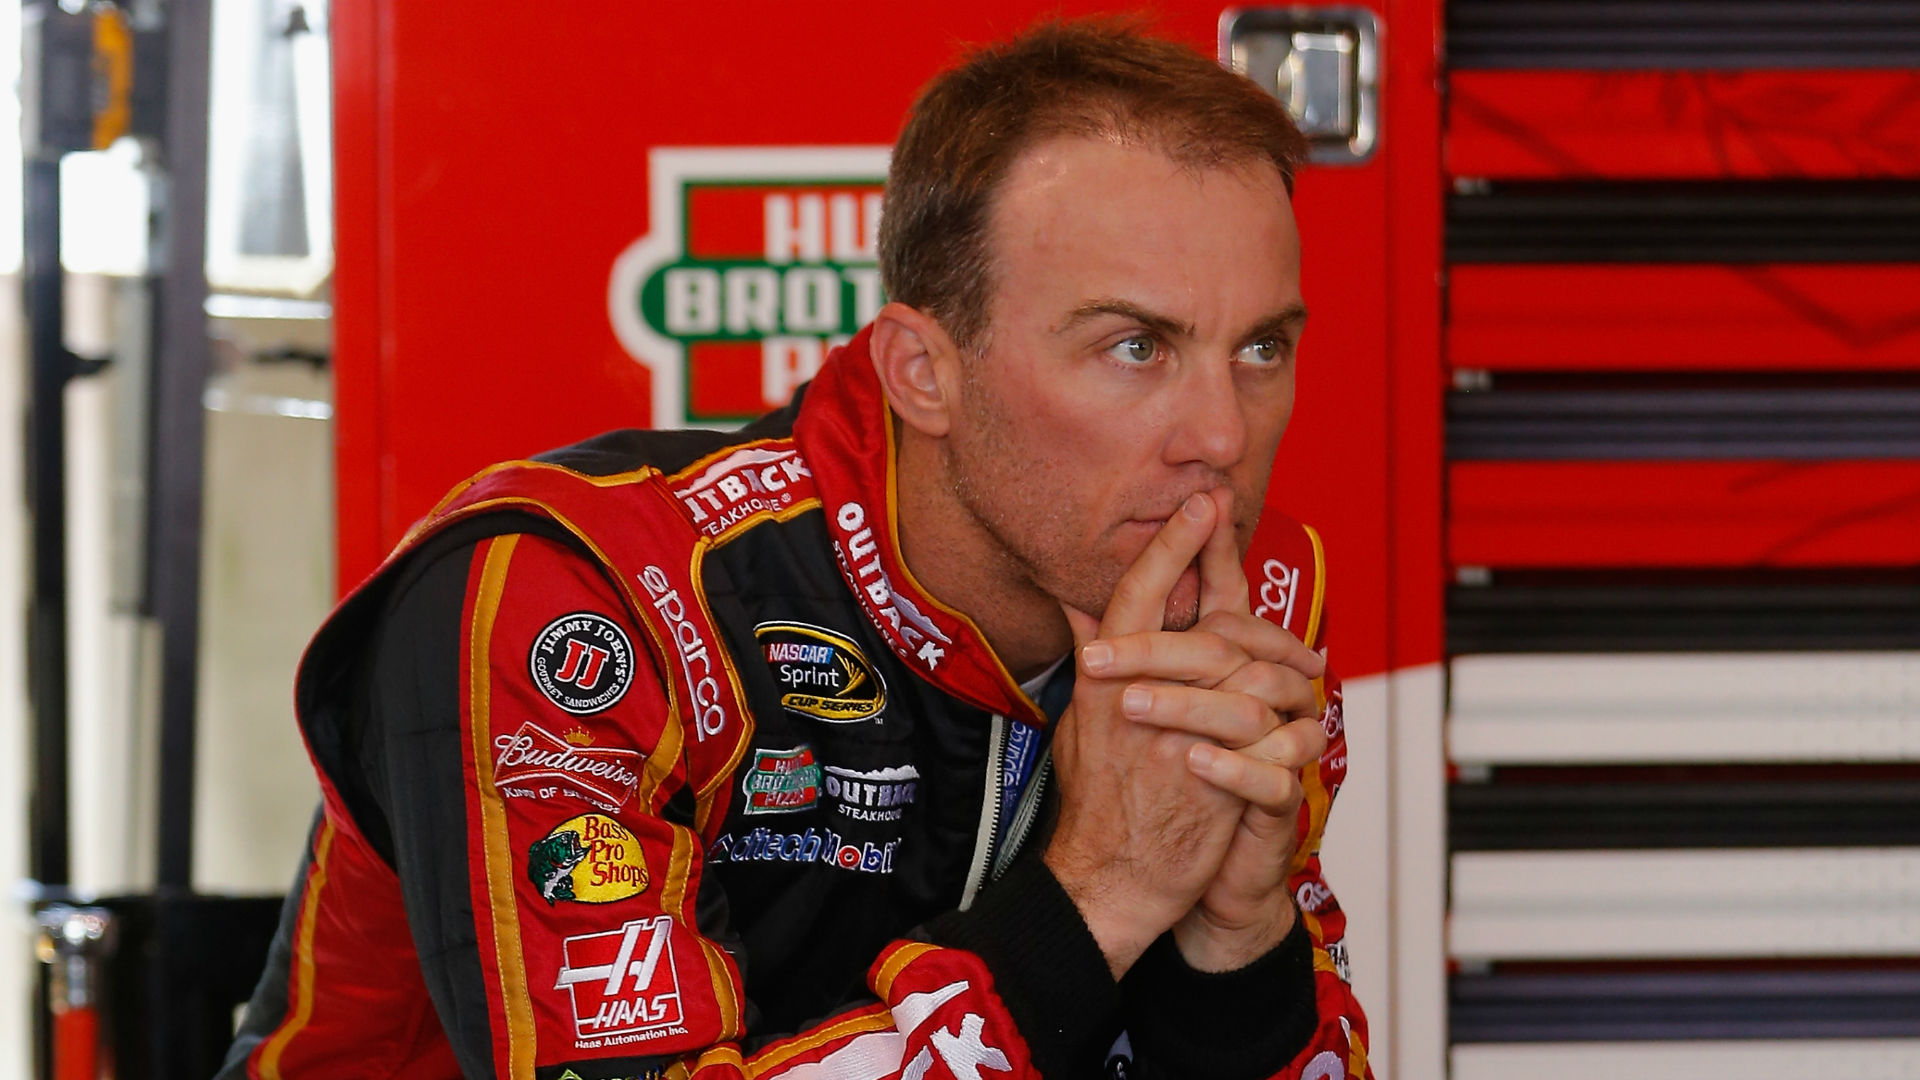 Quicken Loans 500 odds - Harvick massive favorite to win at Phoenix